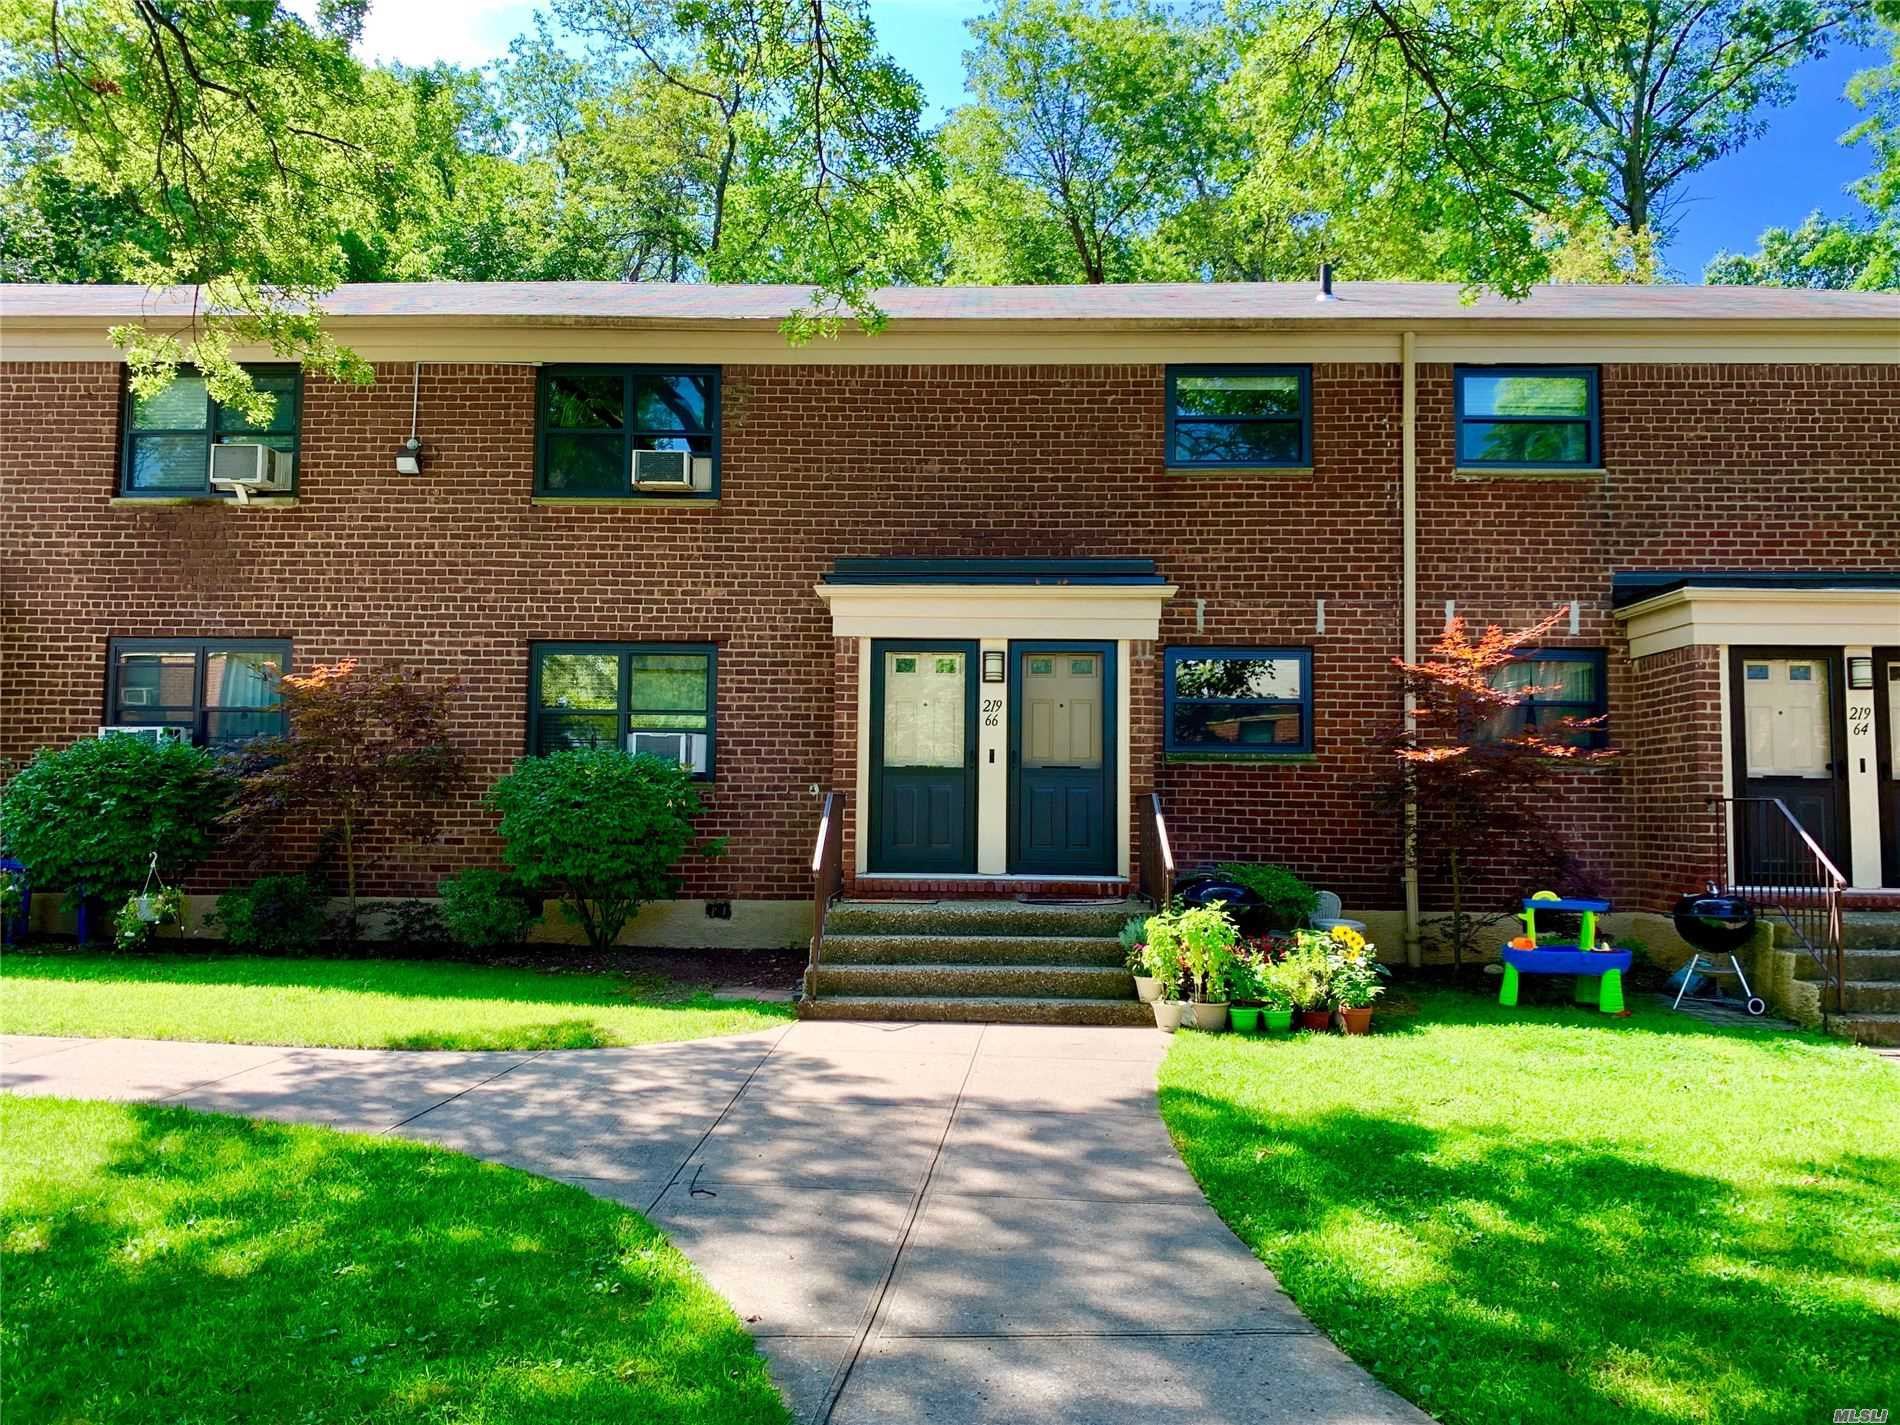 Brand New To The Market In Windsor Oaks! This Beauty Features Upgraded High Hat Lighting, Custom Crown Moldings, Crisp Hardwood Flooring, Updated Kitchen With Cabinets To Ceiling & Dishwasher + Option To Install Your Own Washer And Dryer. Clean Renovated Bathroom, 2 Spacious Bedrooms, And Generous Closet Space. Bring Your Dog Or Cat! Includes Security & Laundry Rooms For Use. Near Schools, Shops, & Transportation.